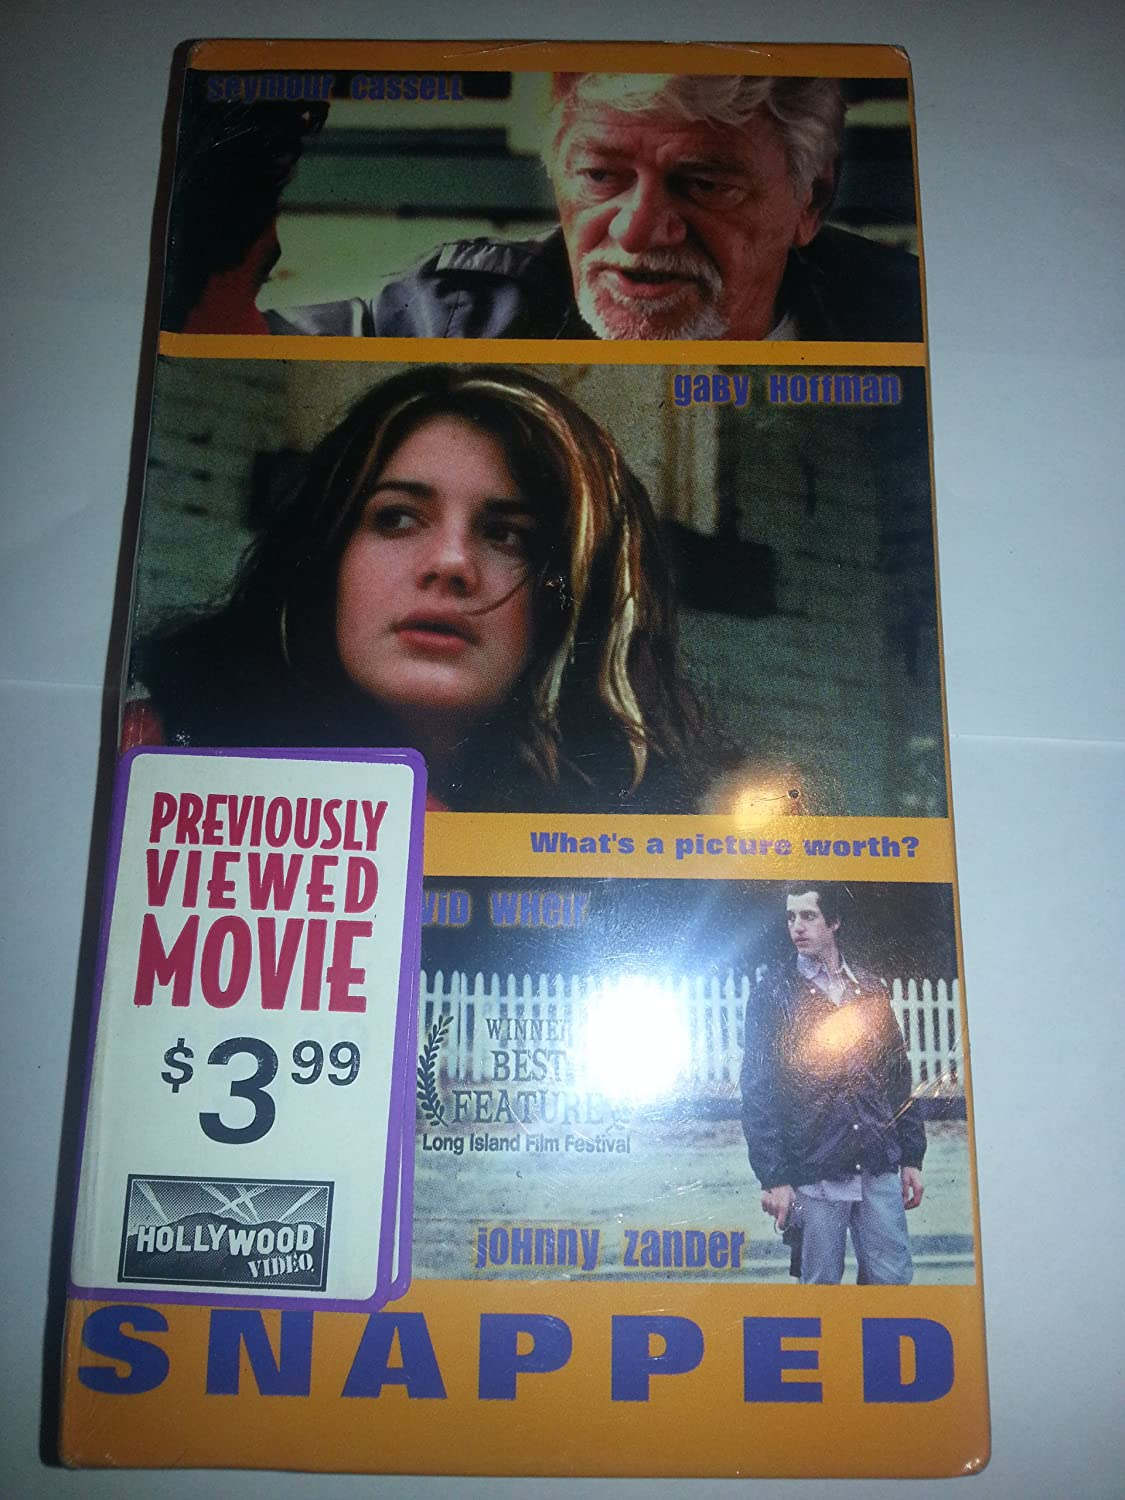 Amazon com: Snapped: Seymour Cassell, Gaby Hoffman, David